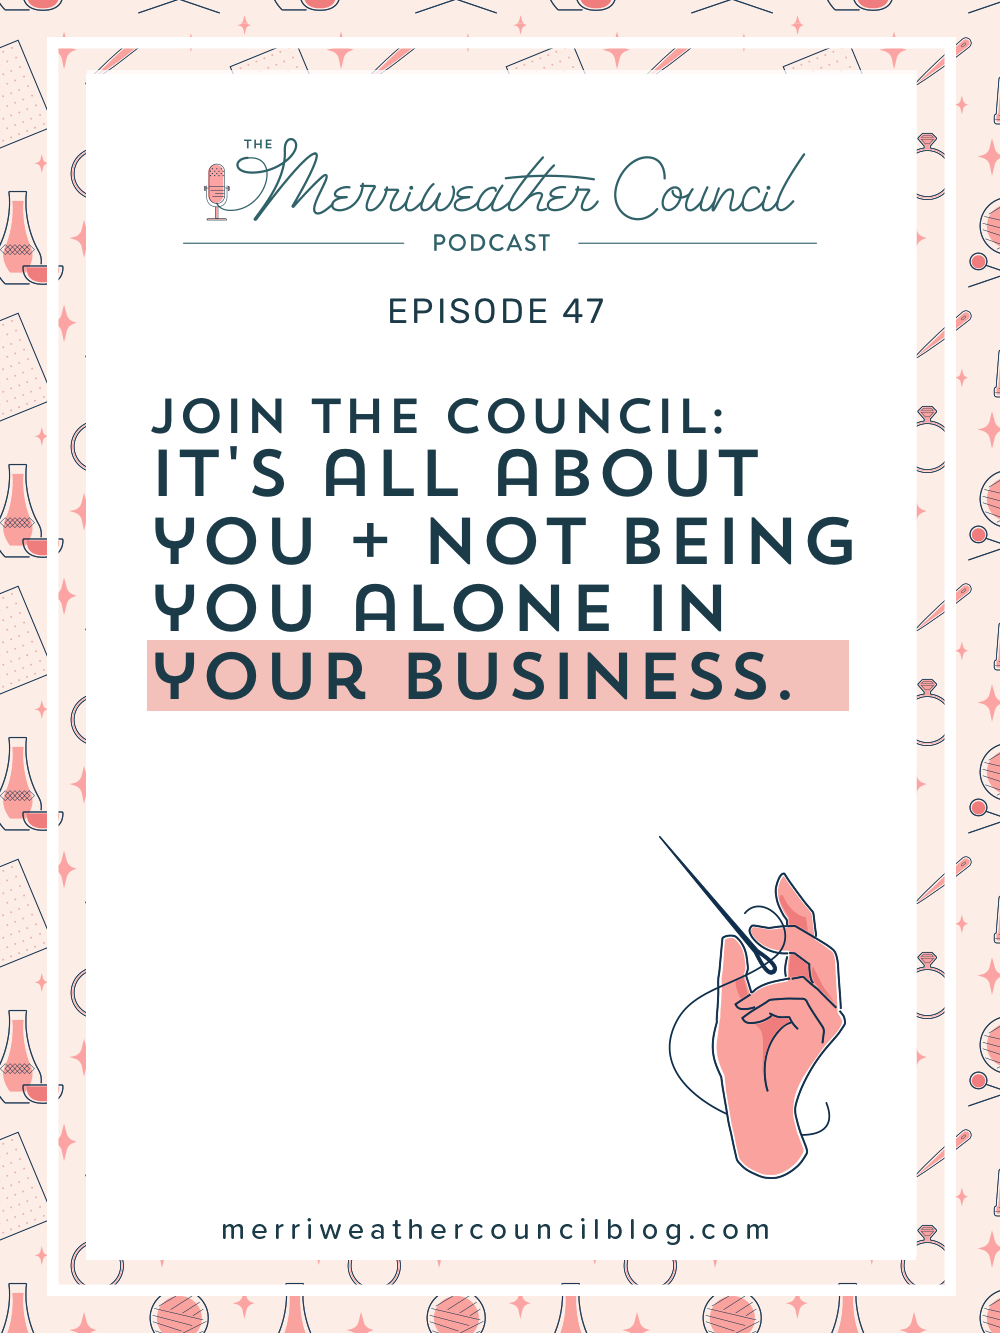 You are most likely a one-person show. Your business is relying on you. As a soloprenuer, it all comes down to you. But YOU don't have to be you alone in your business. Let me explain what that means in this episode. | The Merriweather Council